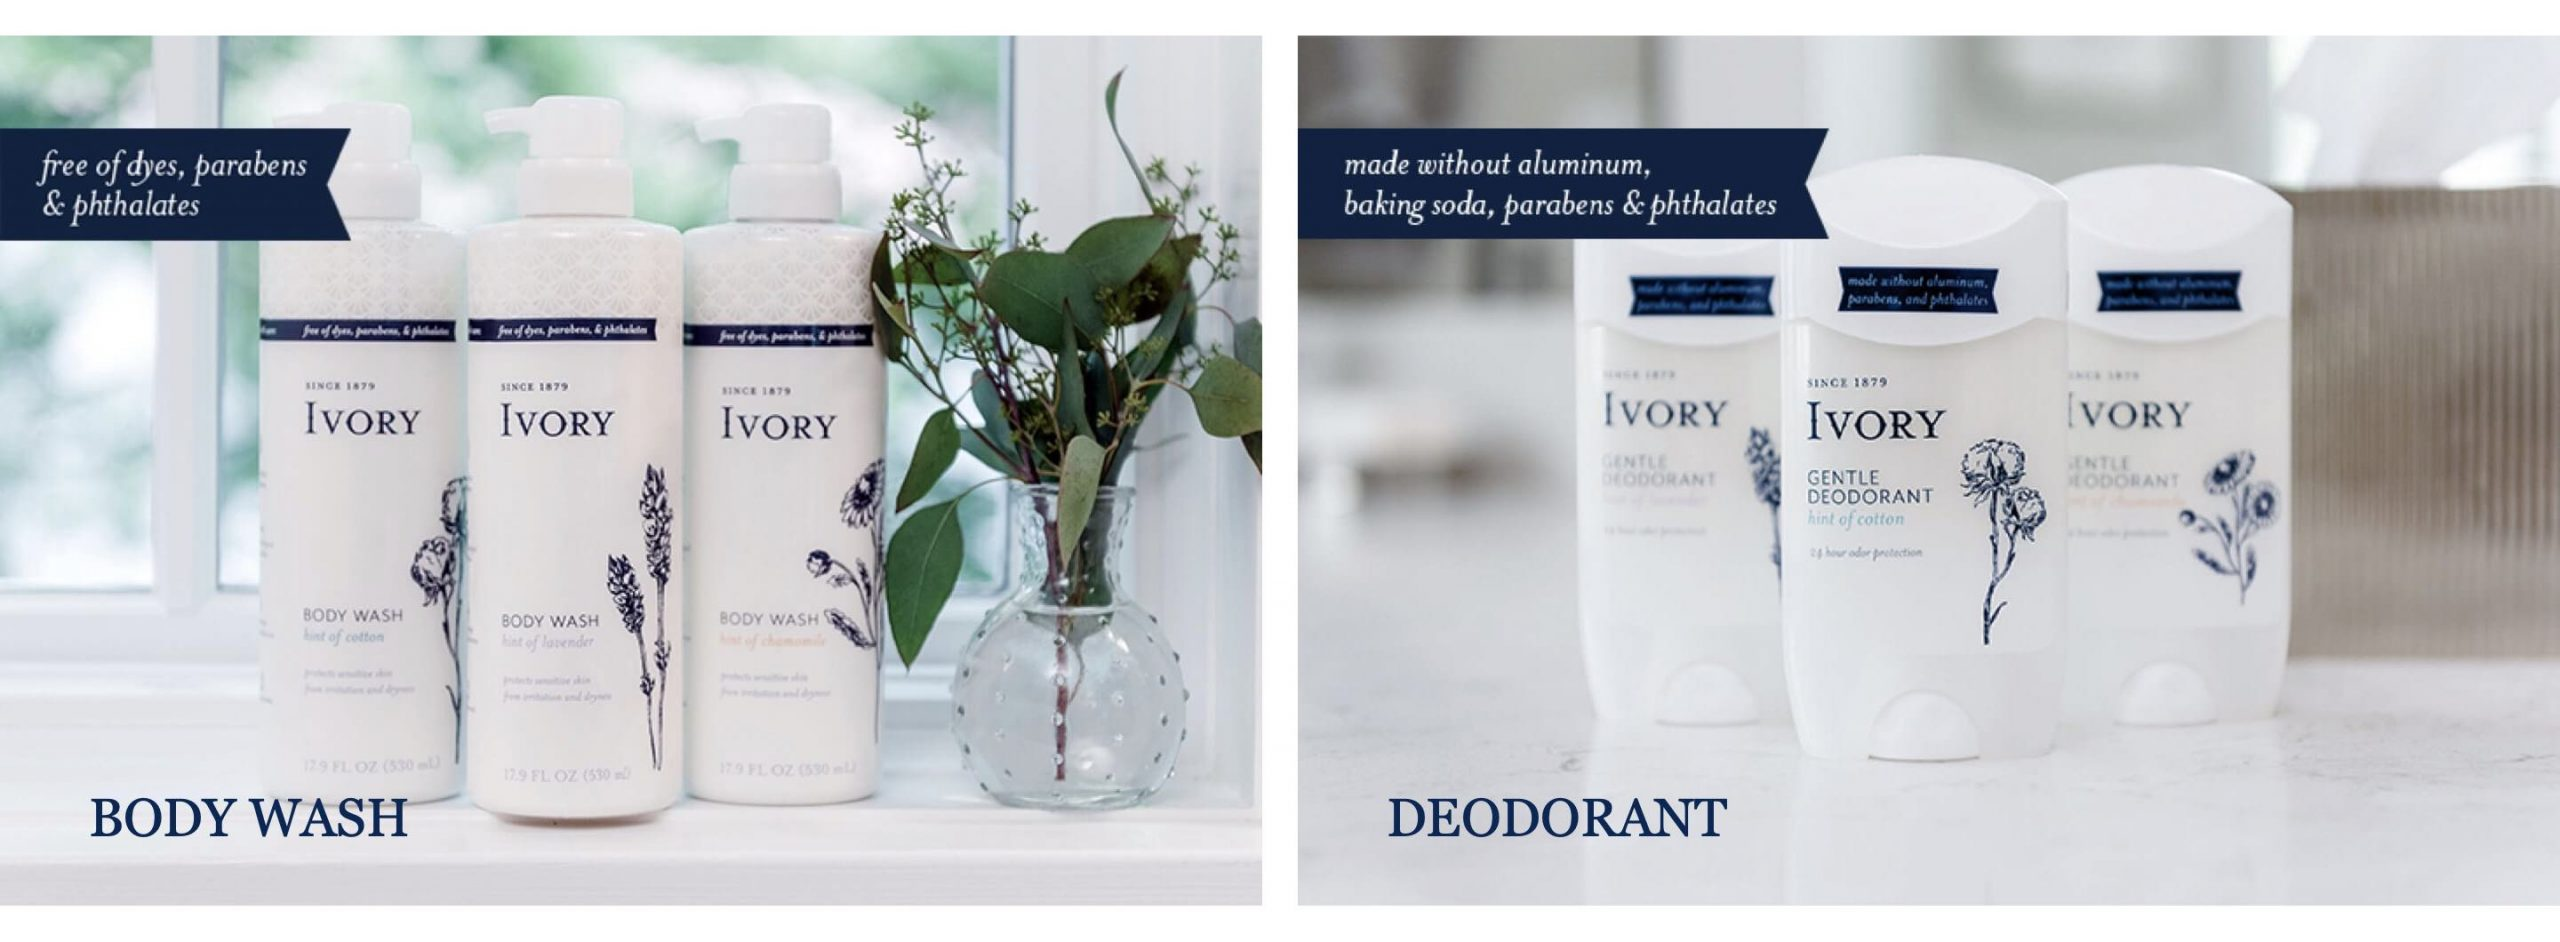 Image from Ivory.com showing two images: (a) three bottles of body wash and (b) three deodorant sticks.